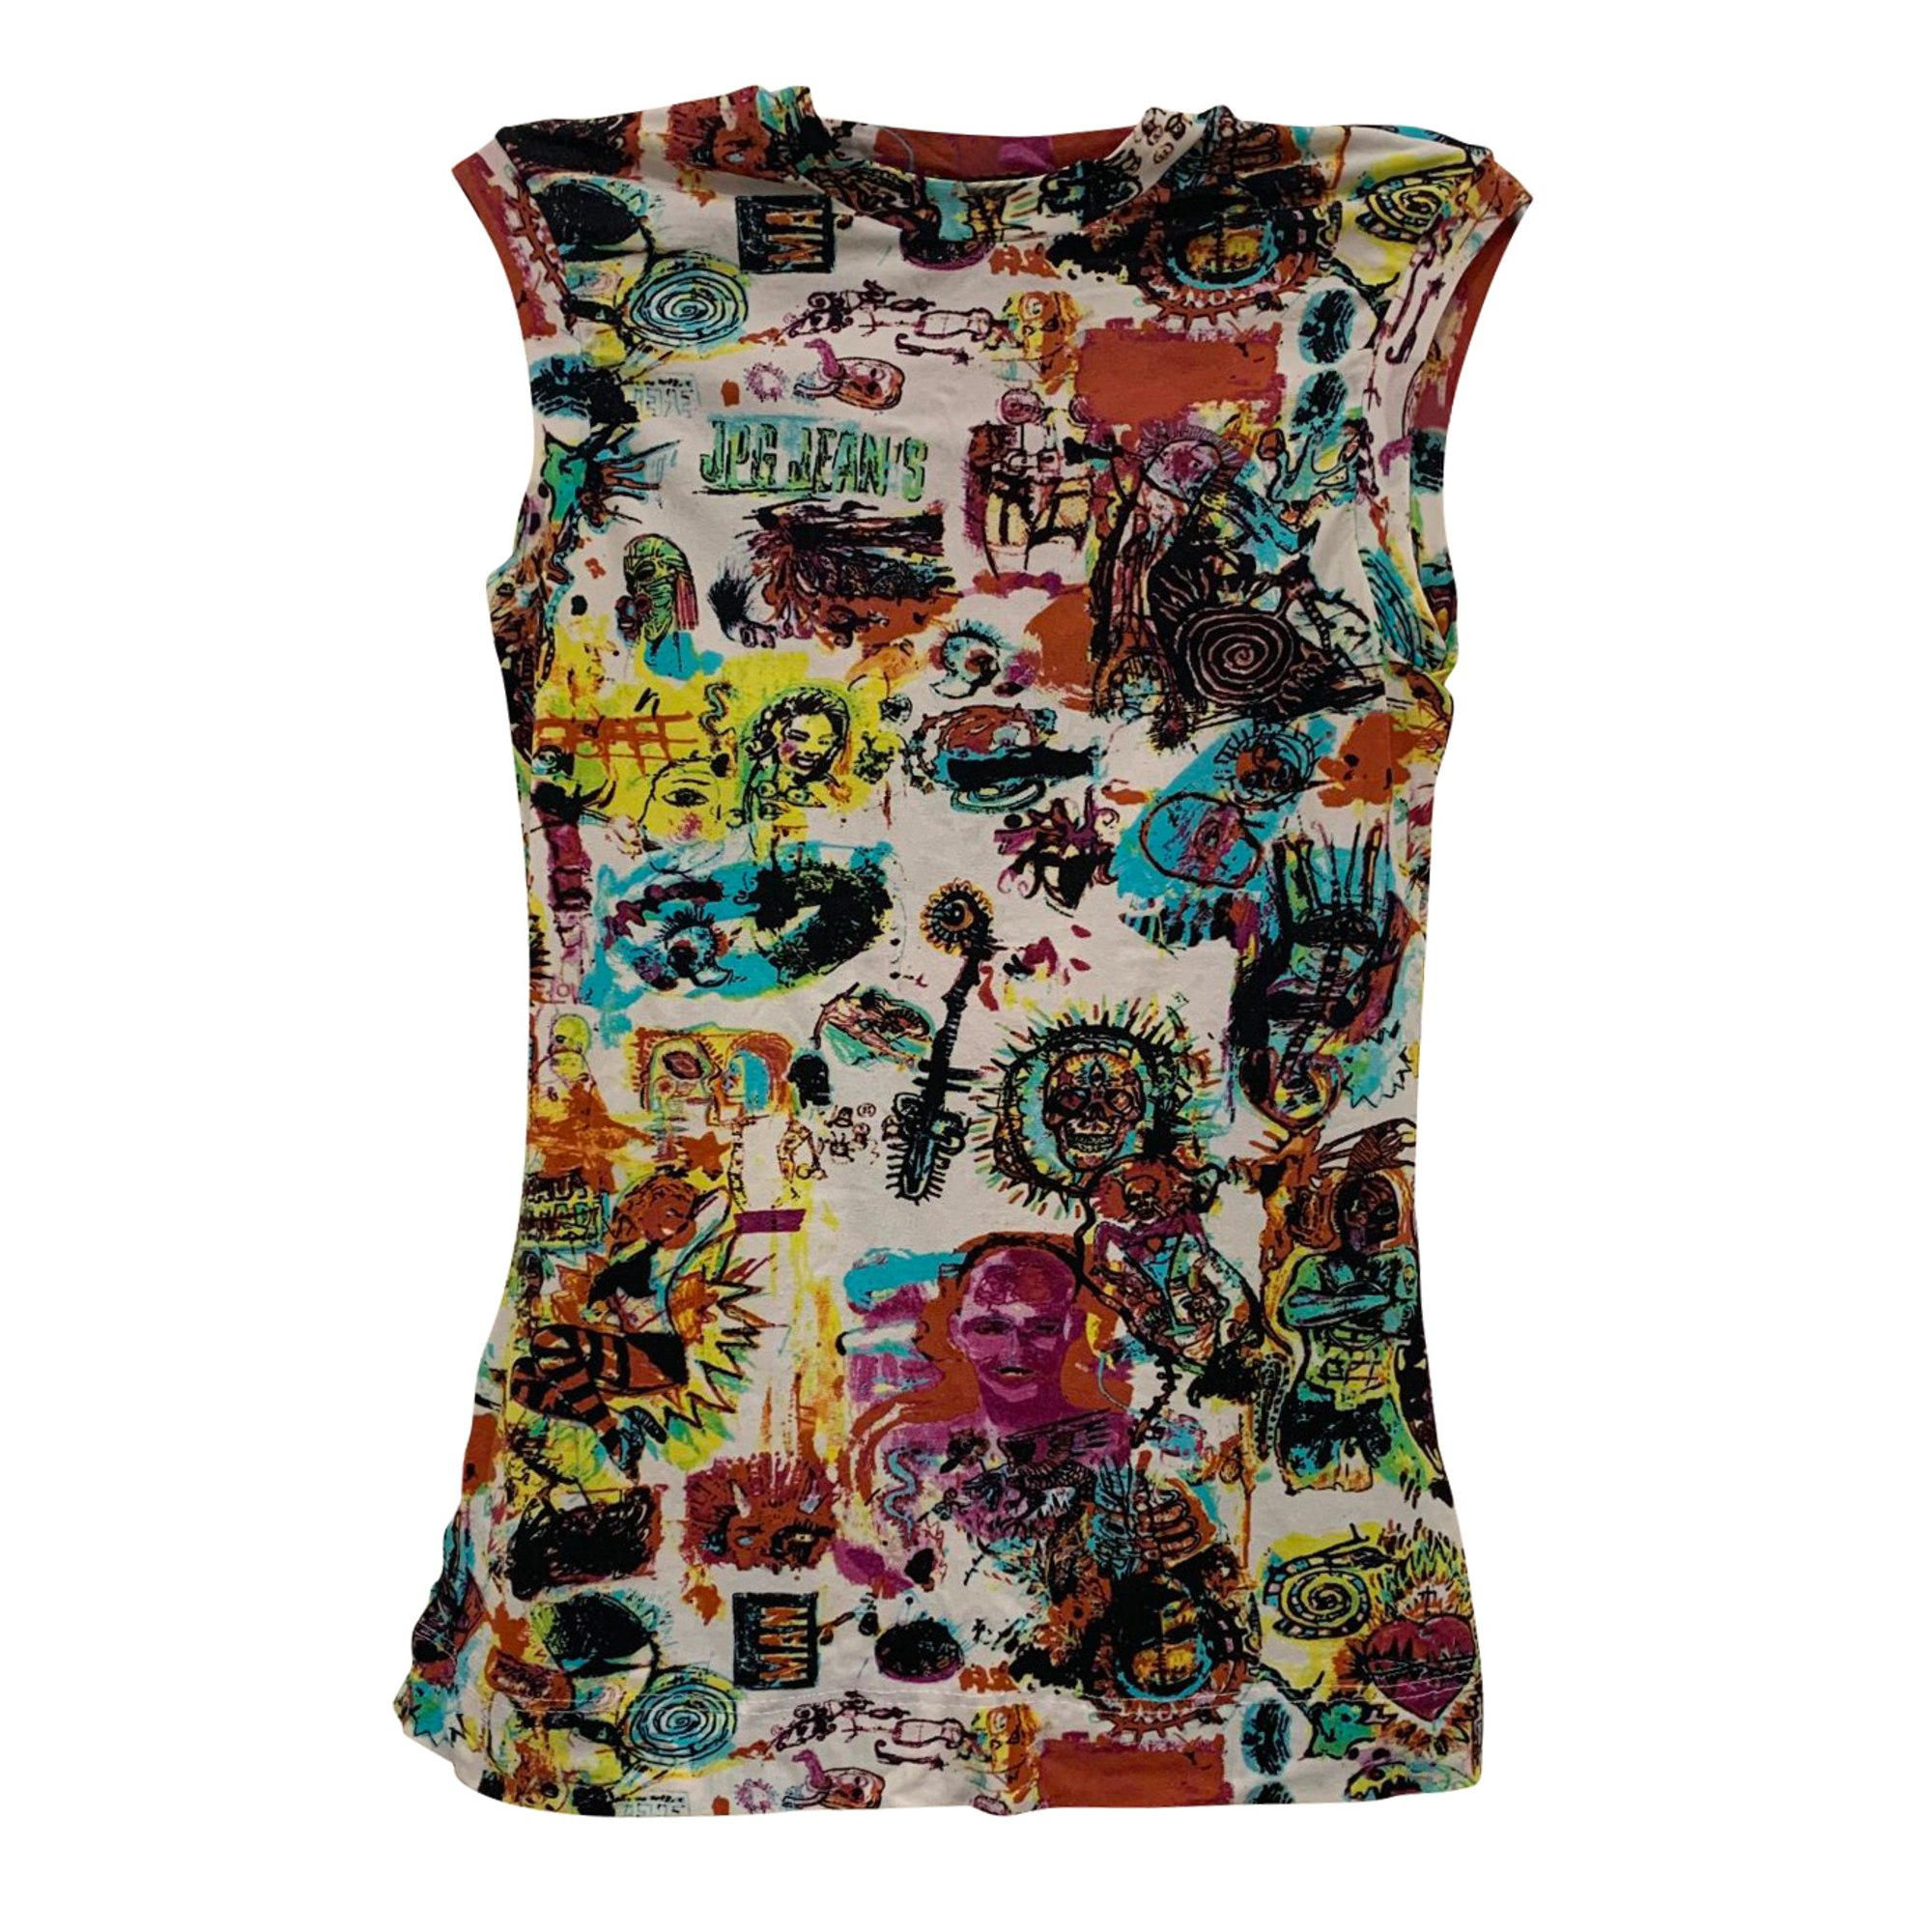 Top, tee-shirt JEAN PAUL GAULTIER Multicouleur